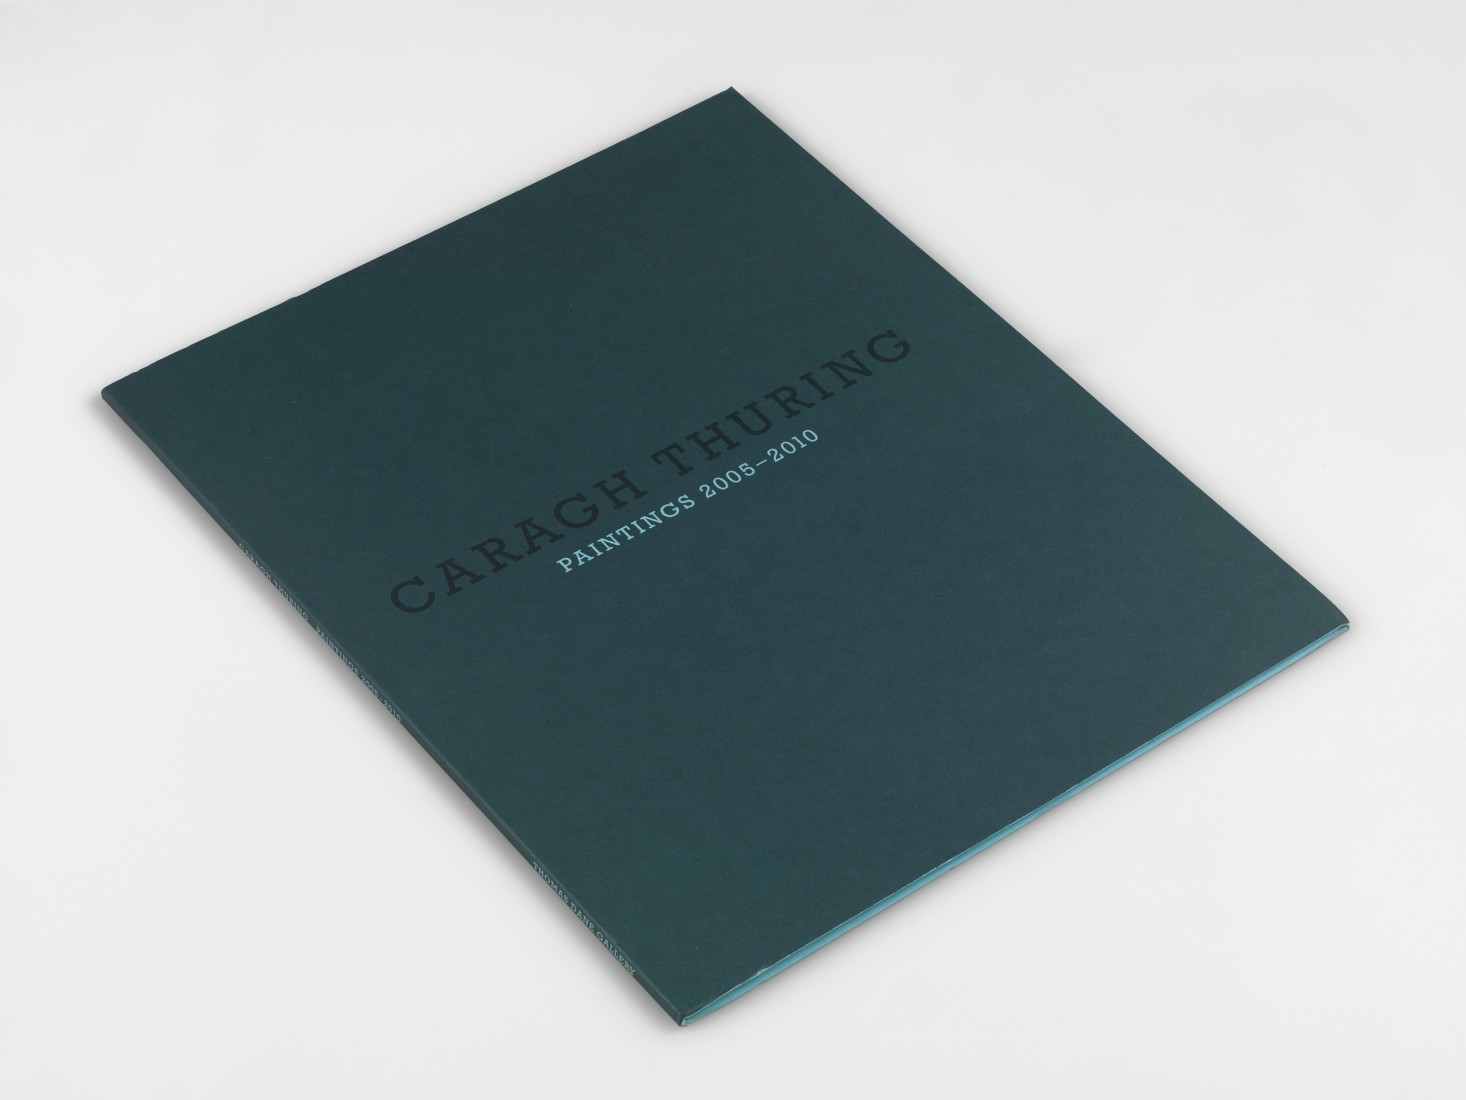 Caragh Thuring: Paintings 2005-2010